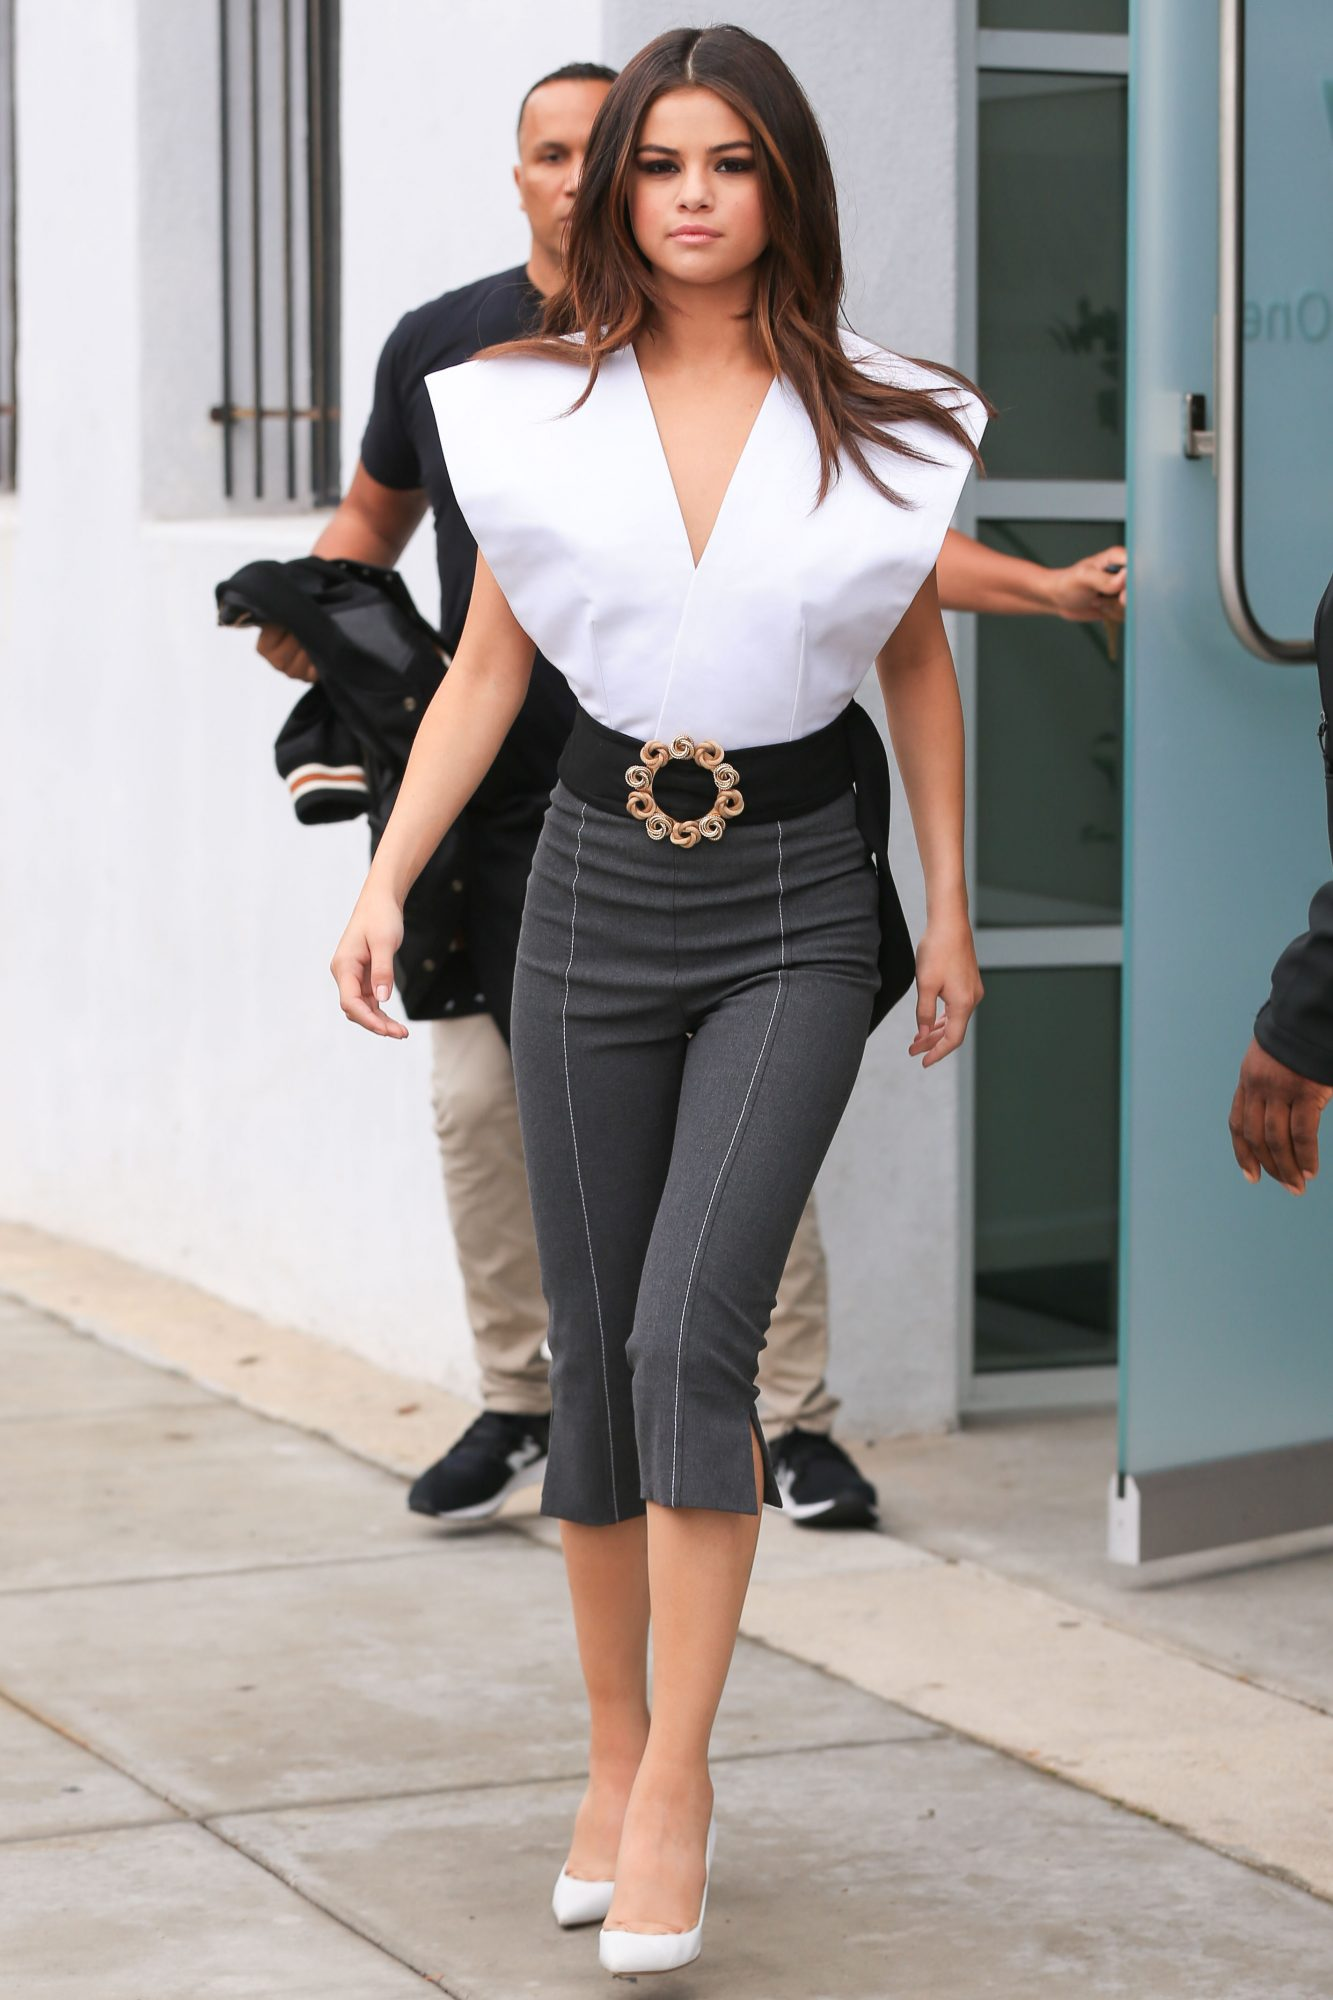 Selena Gomez Shows Off Sideboob in Plunging White Top ...